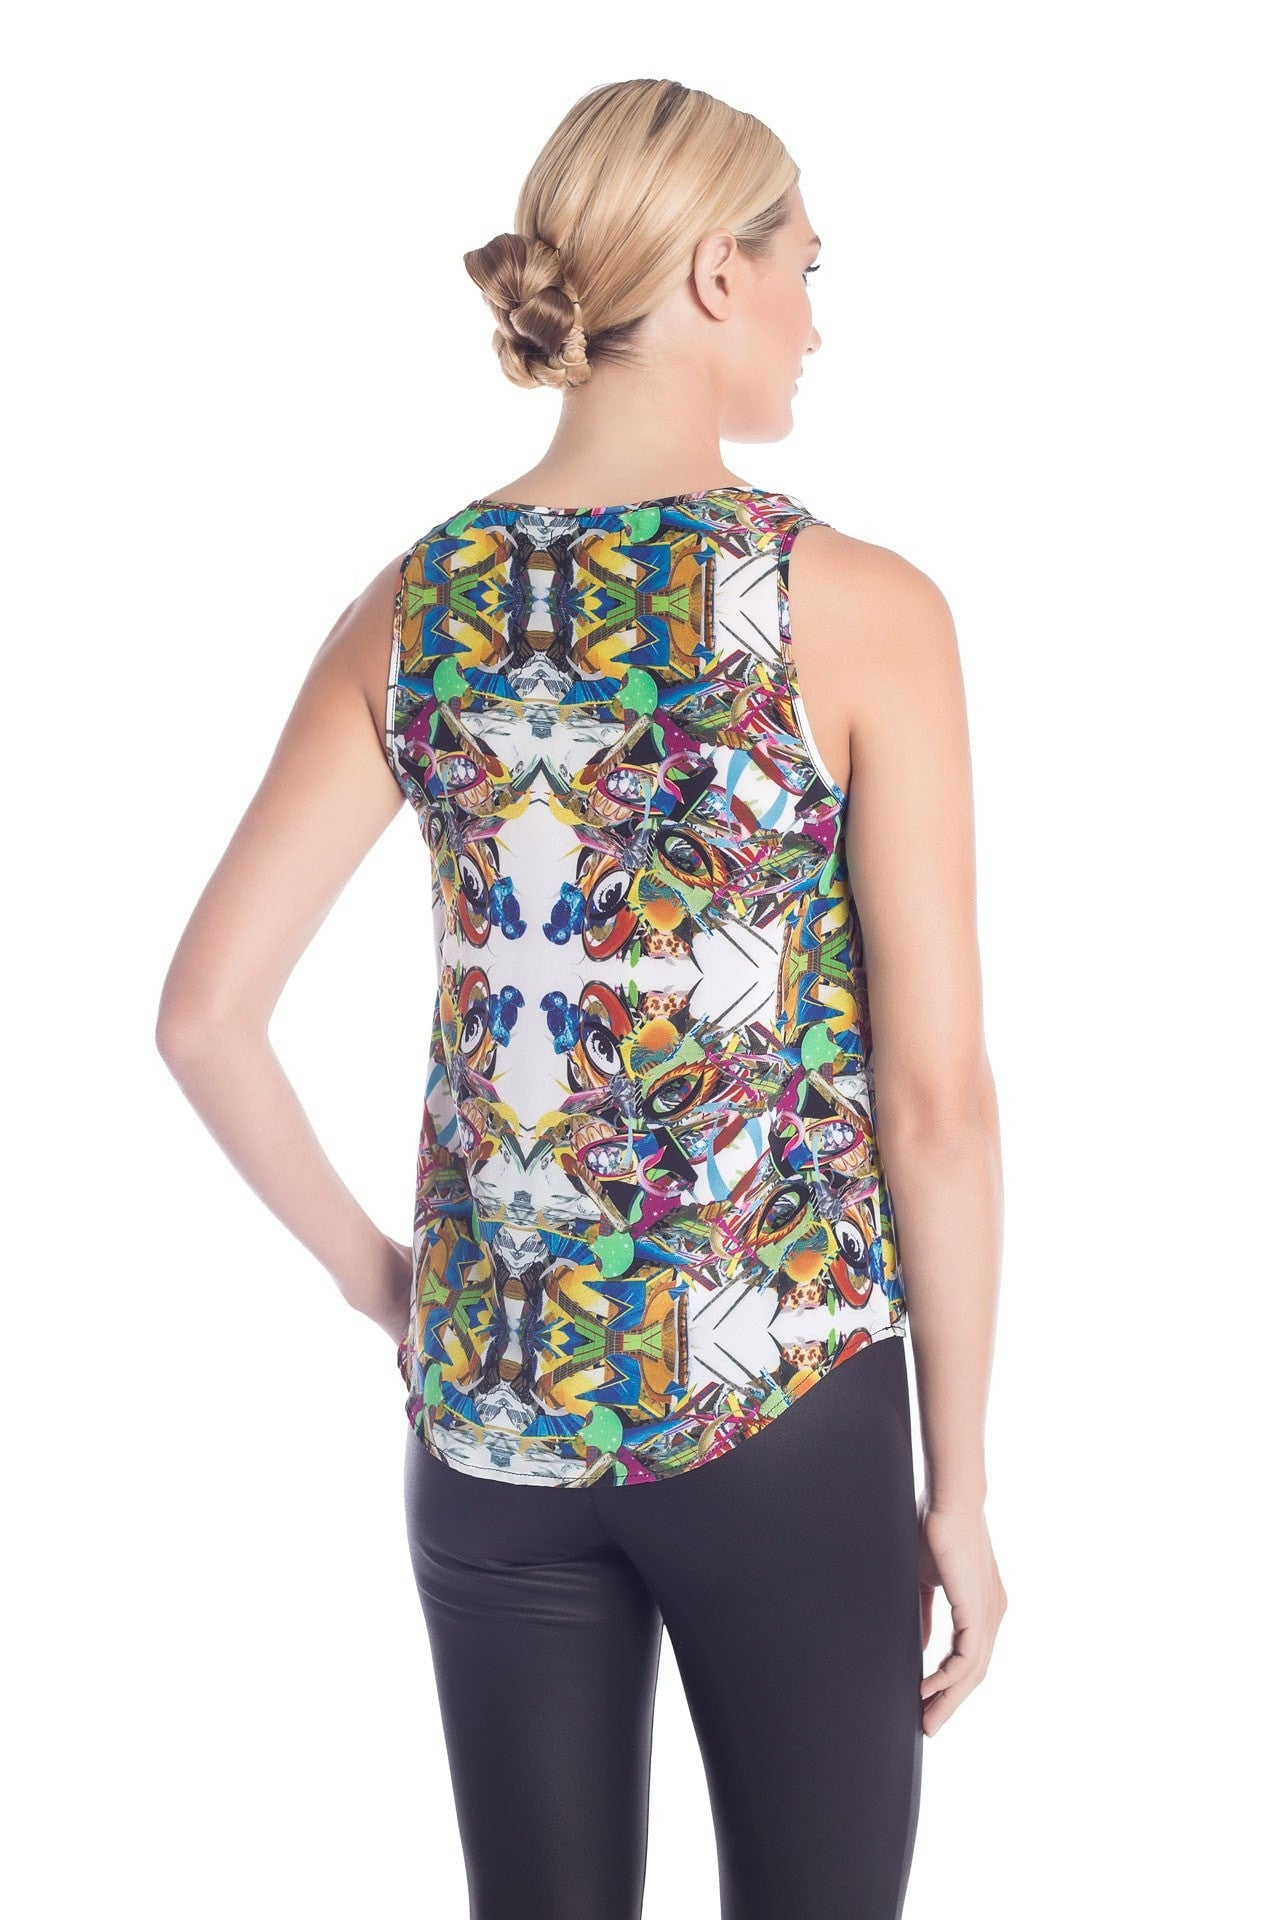 Kinetic Silk Tank Top - Kaleidoscopic Print Tank Tops - artTECA